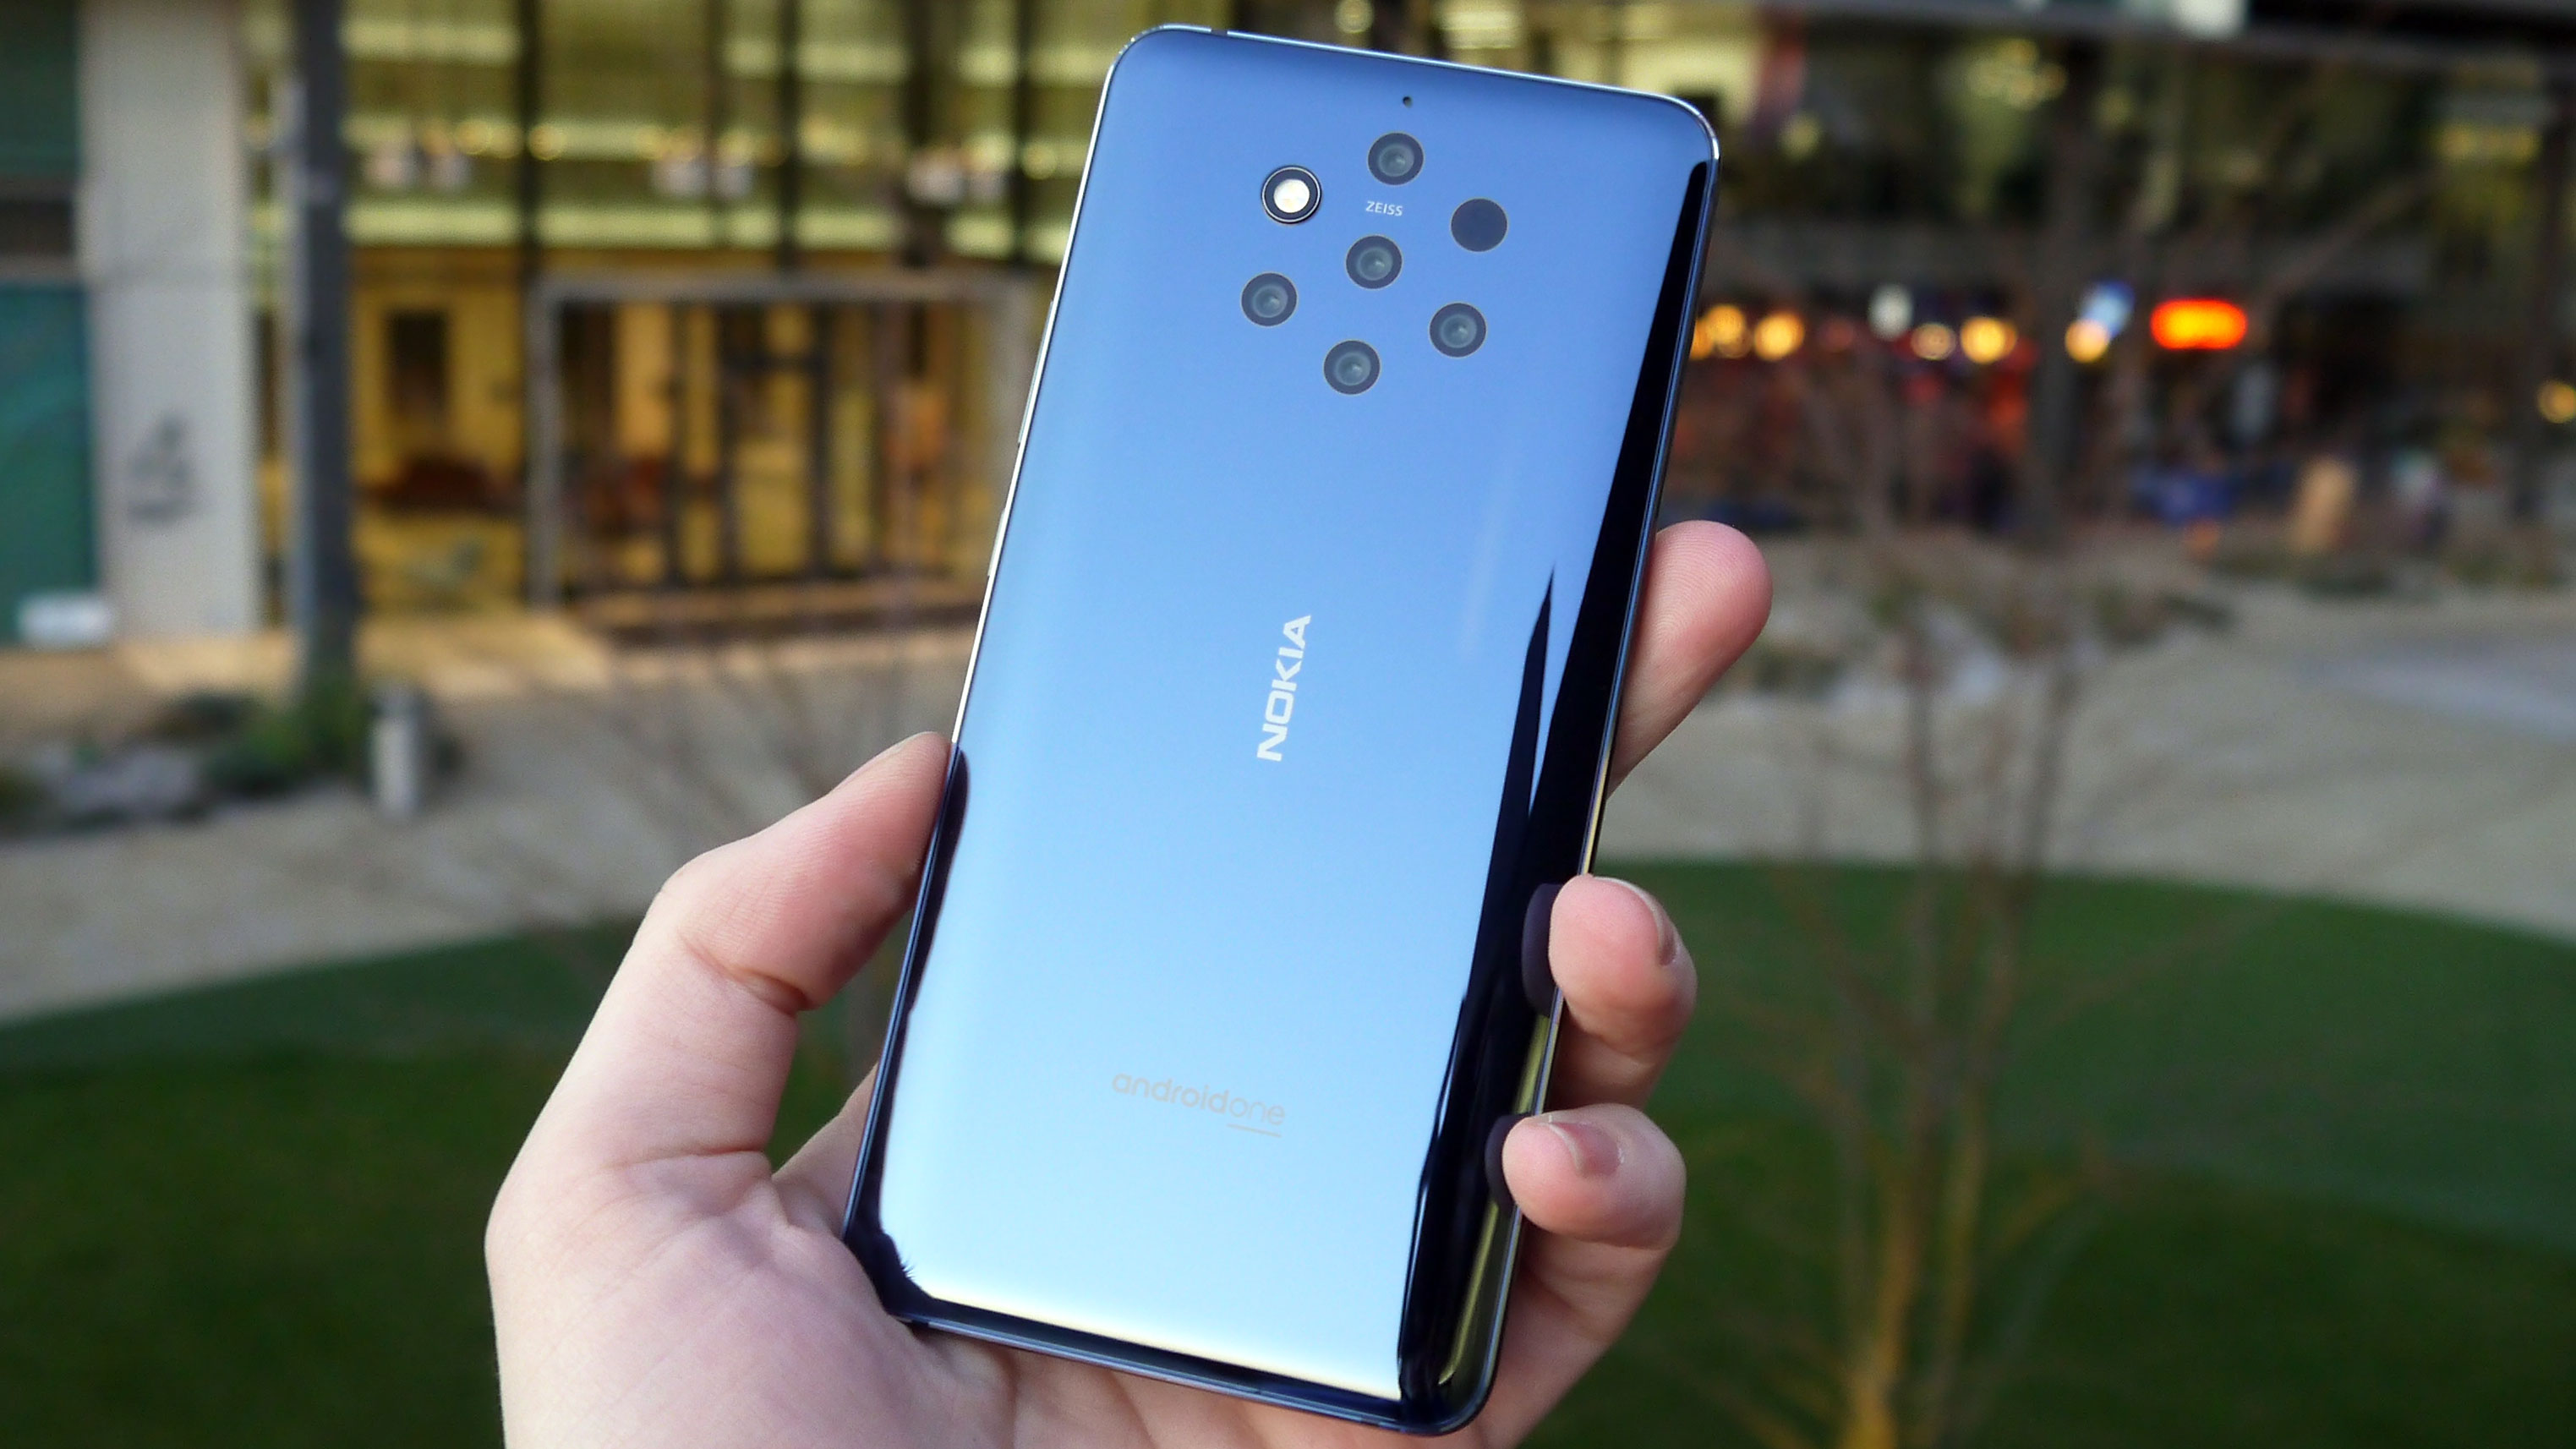 Nokia 9 PureView launches with more rear cameras than any other smartphone